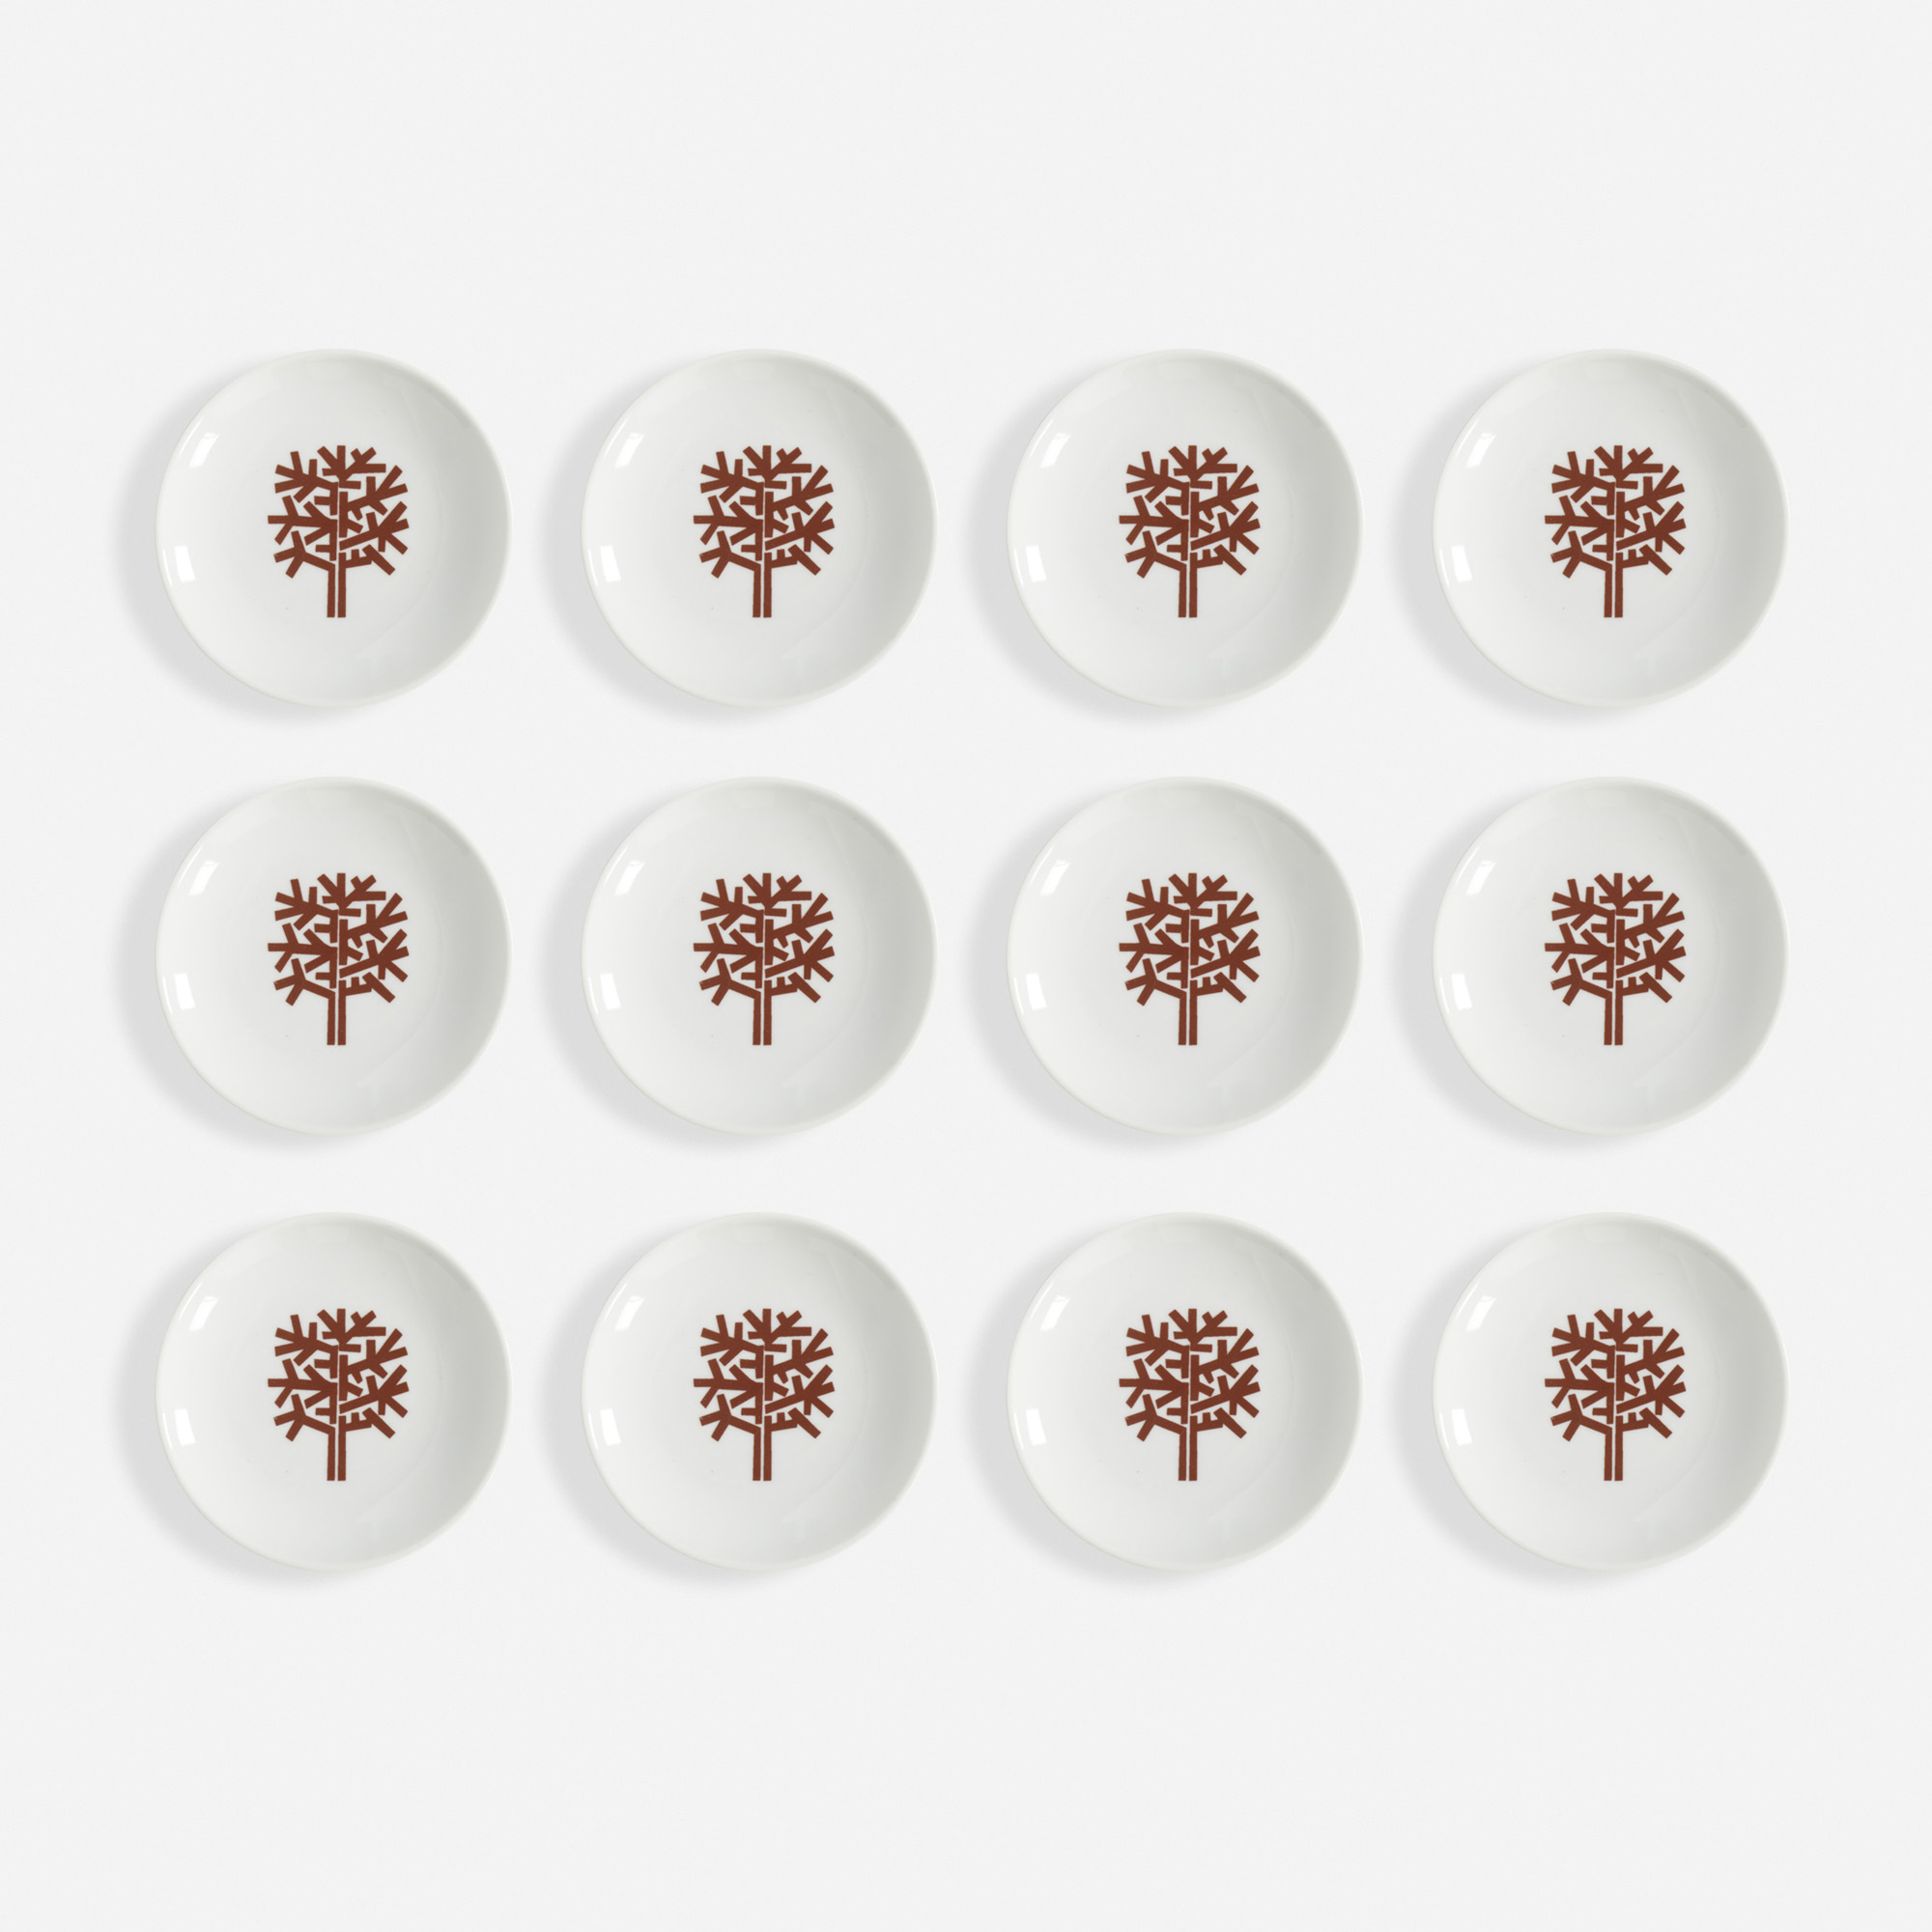 361:  / Four Seasons Winter ashtrays, set of twelve (1 of 1)